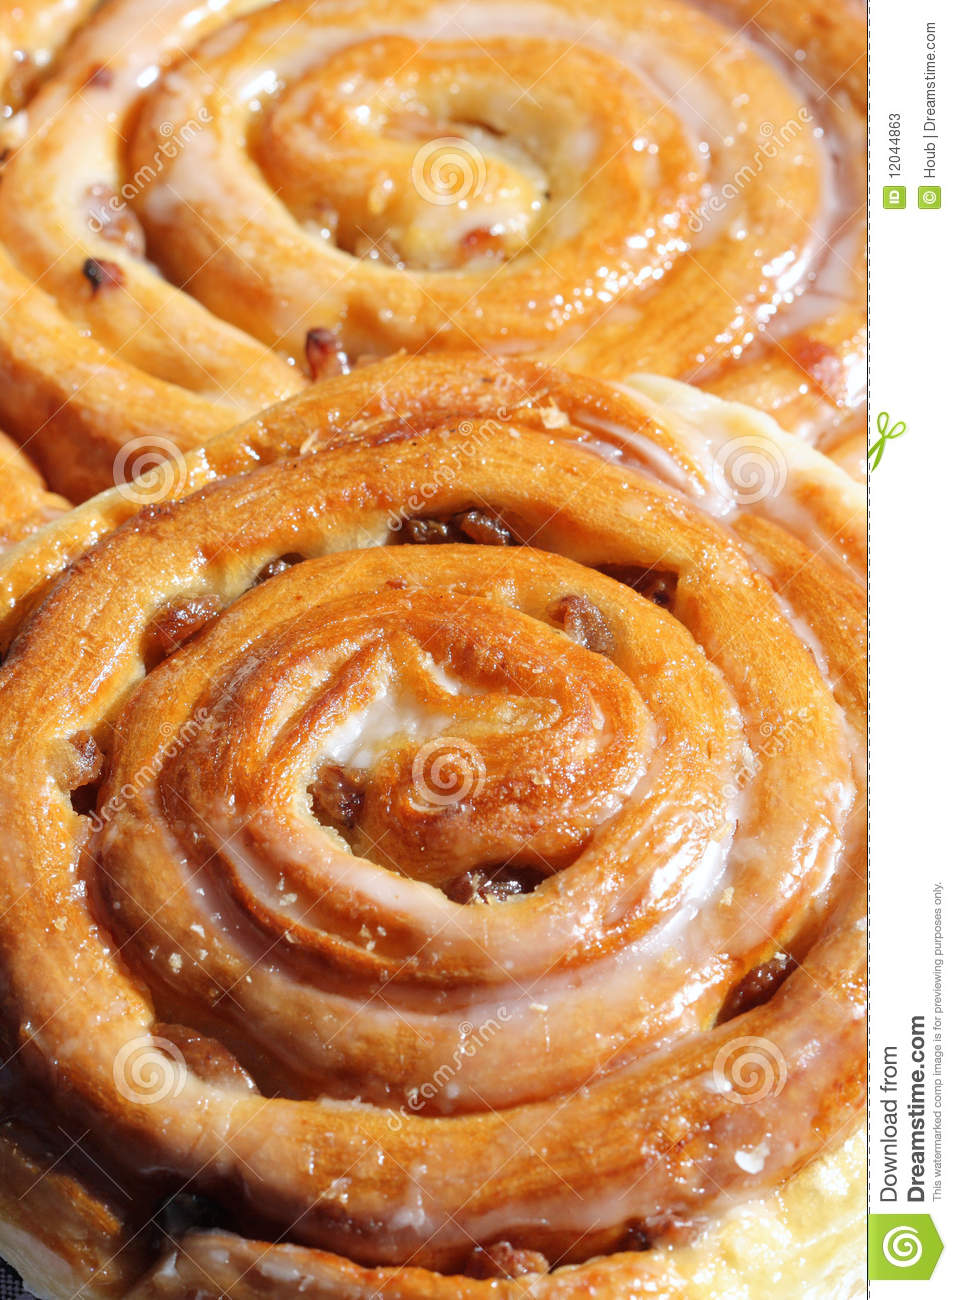 Sweet Cinnamon Raisin Buns Stock Photos - Image: 12044863